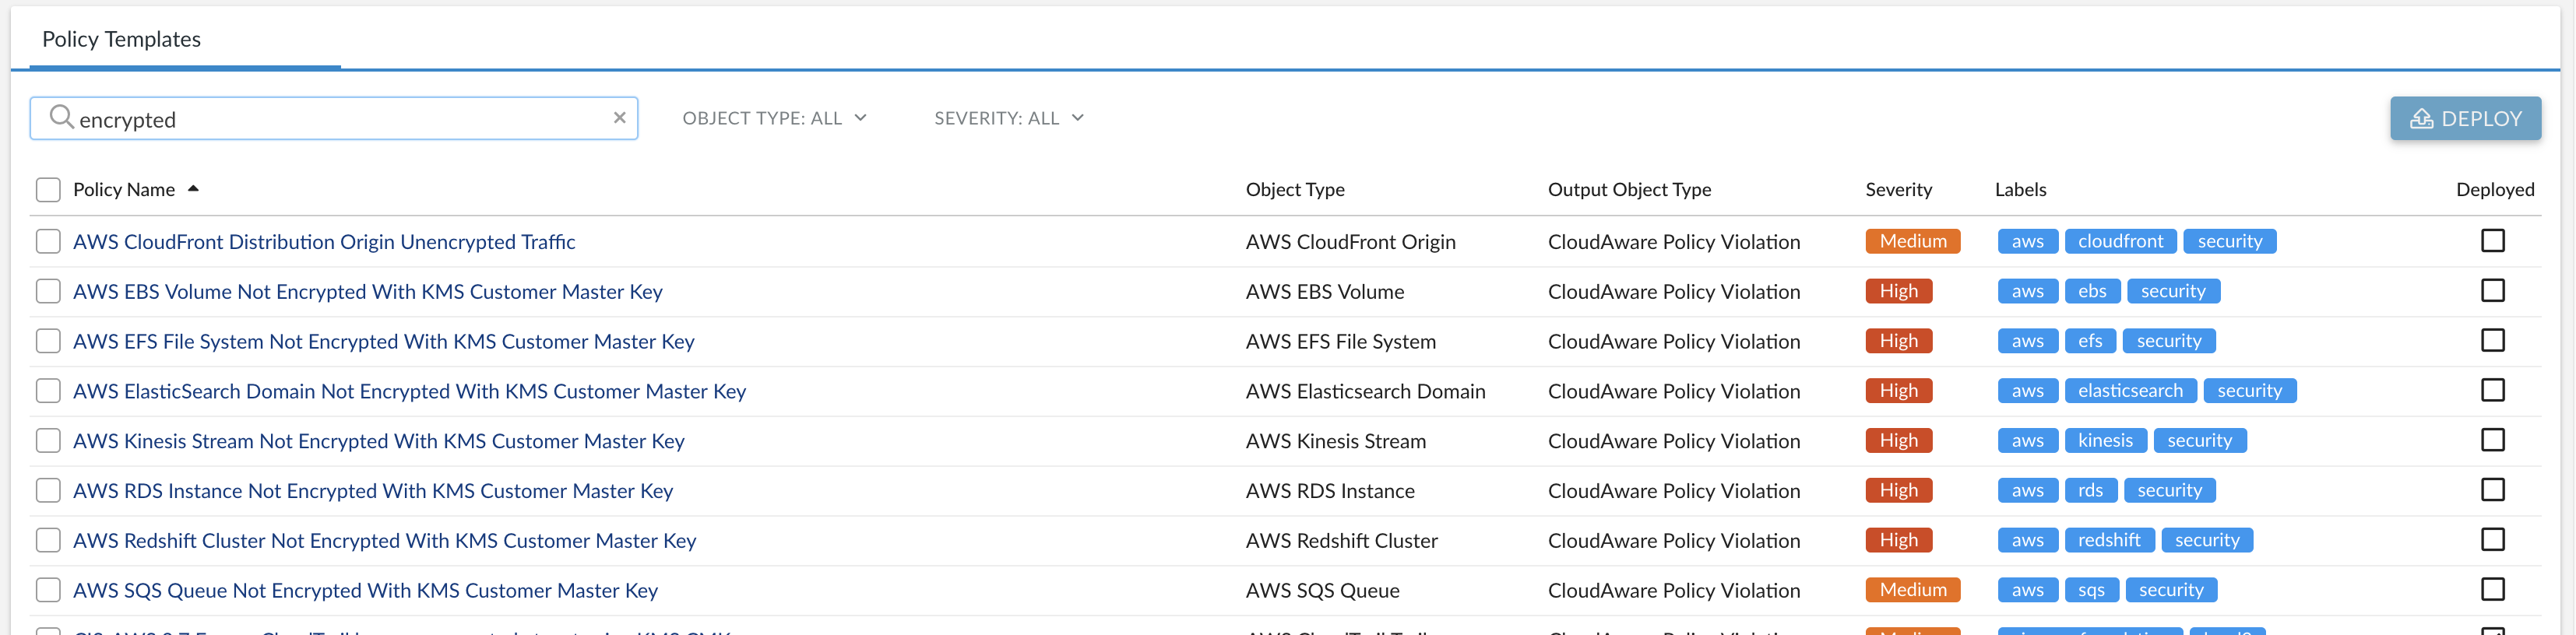 What You Need To Know About CIS Benchmarks for AWS, Azure